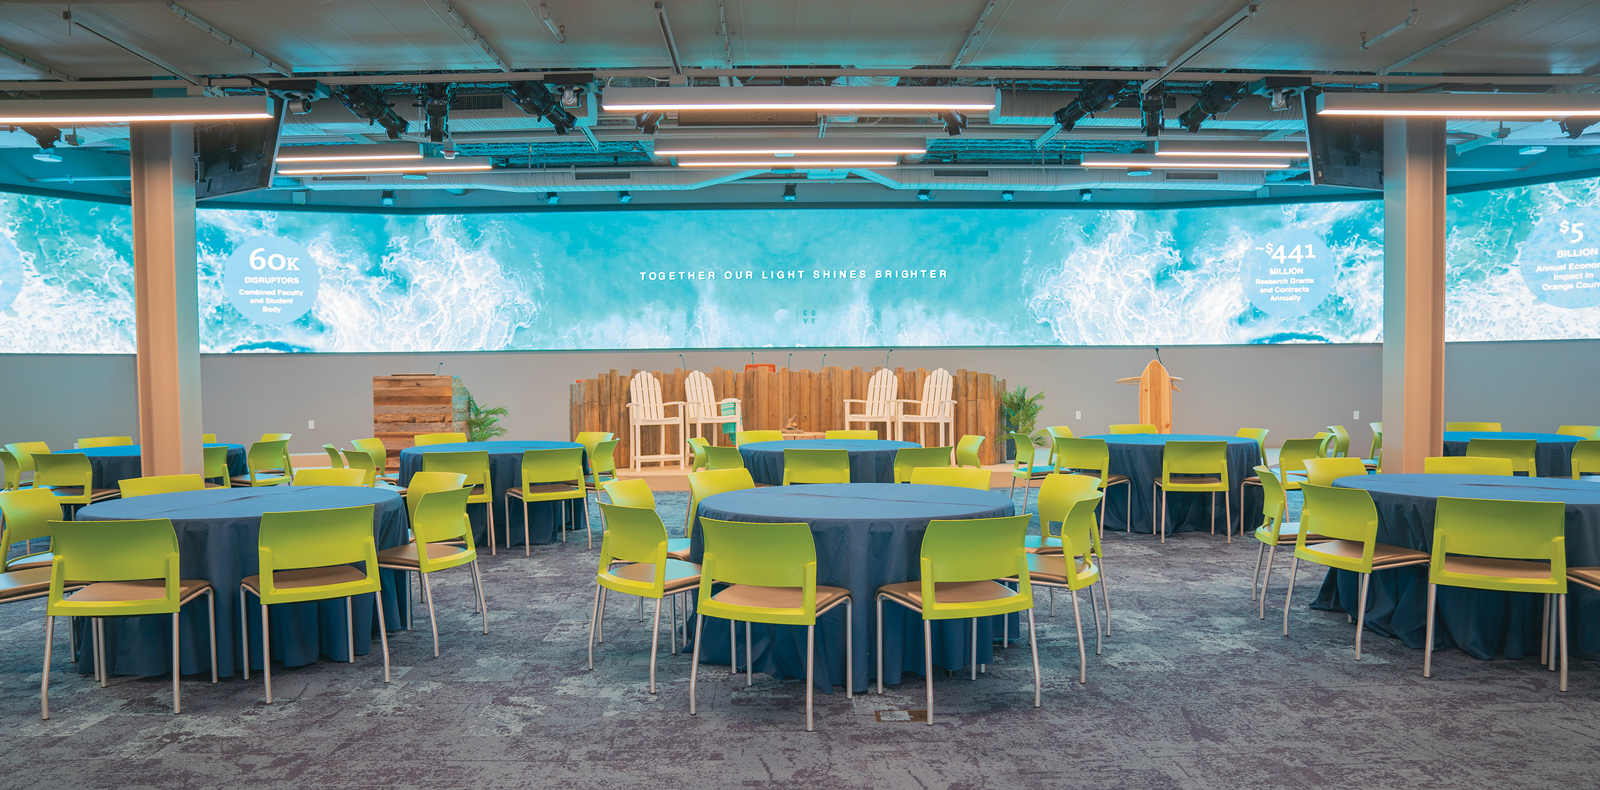 Photograph of The Beach @ The Cove set up for a presentation. Round tables with blue table covers surrounded by green chairs. Behind we see stage set up with beach chairs and wide digital screen displaying ocean water.